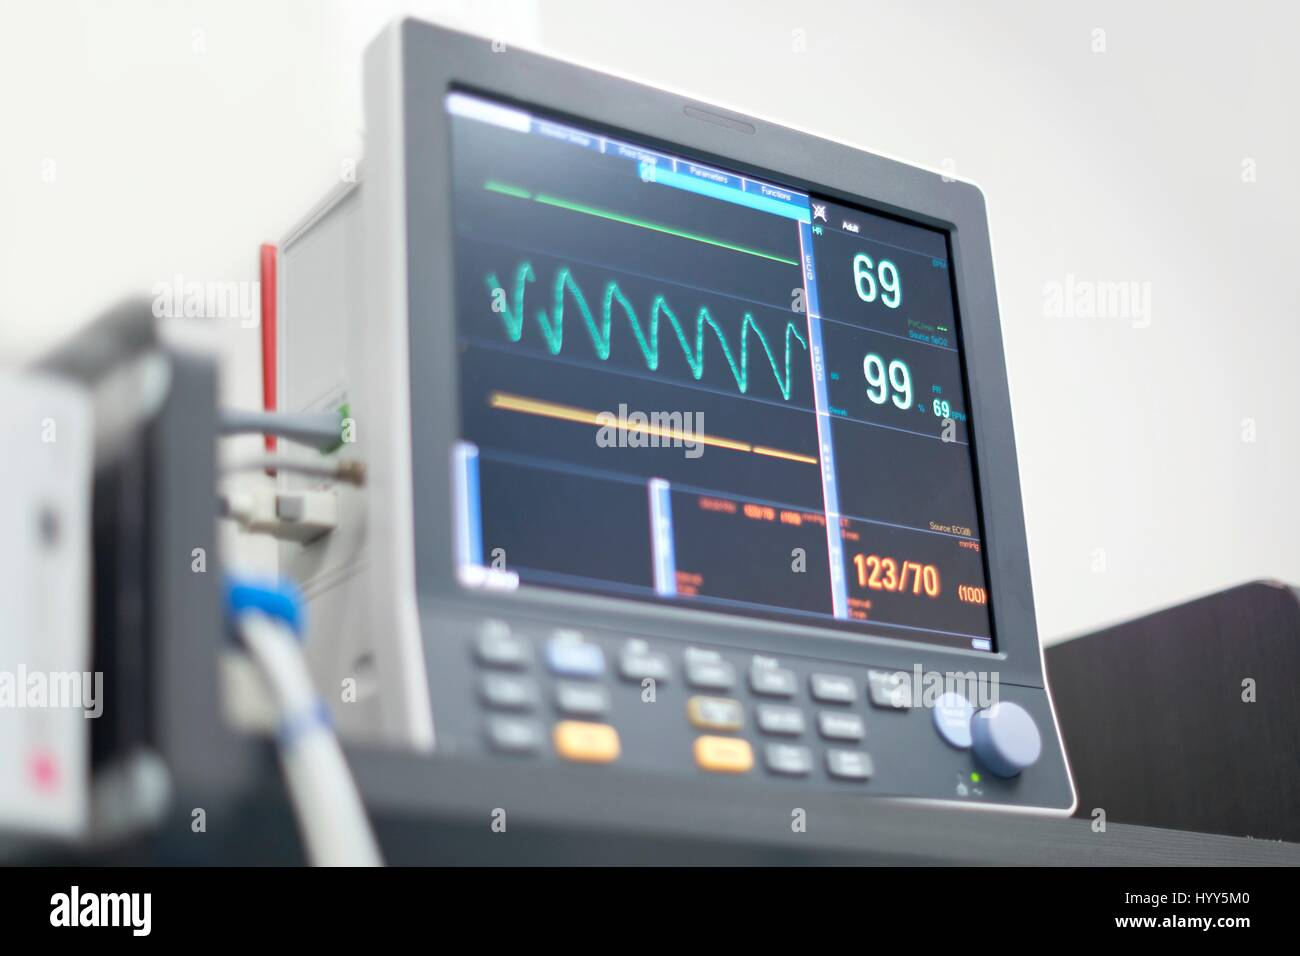 Heart rate monitor digital display. - Stock Image